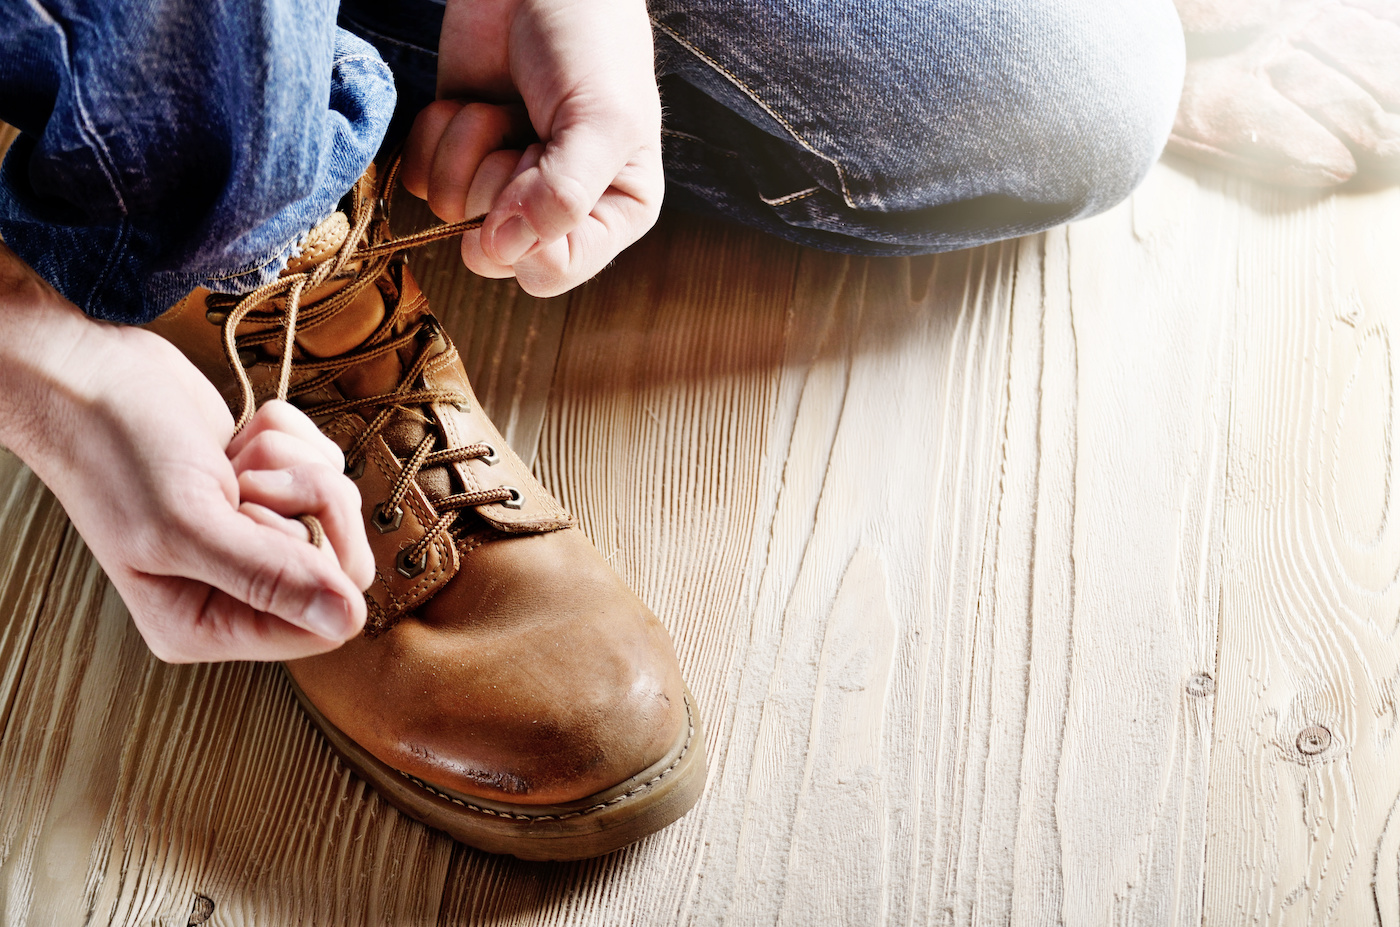 Carpenter in blue jeans tying shoelaces of yellow work boots on on wooden floor